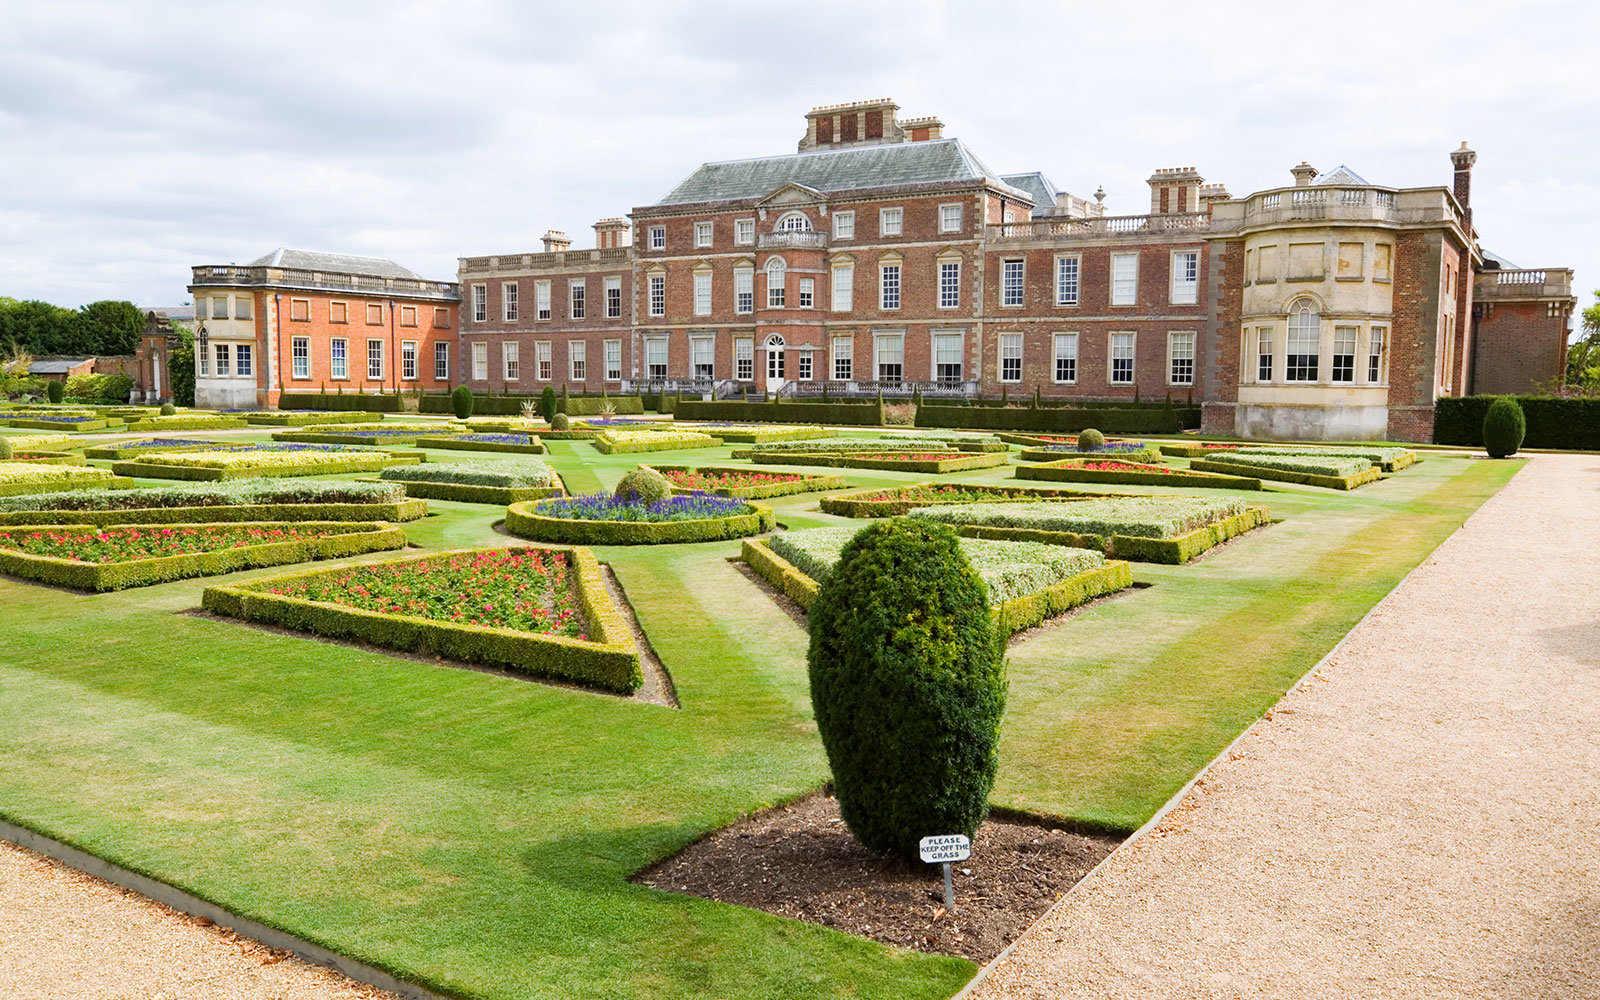 Wimpole Hall Stately Home in Cambridgeshire, England